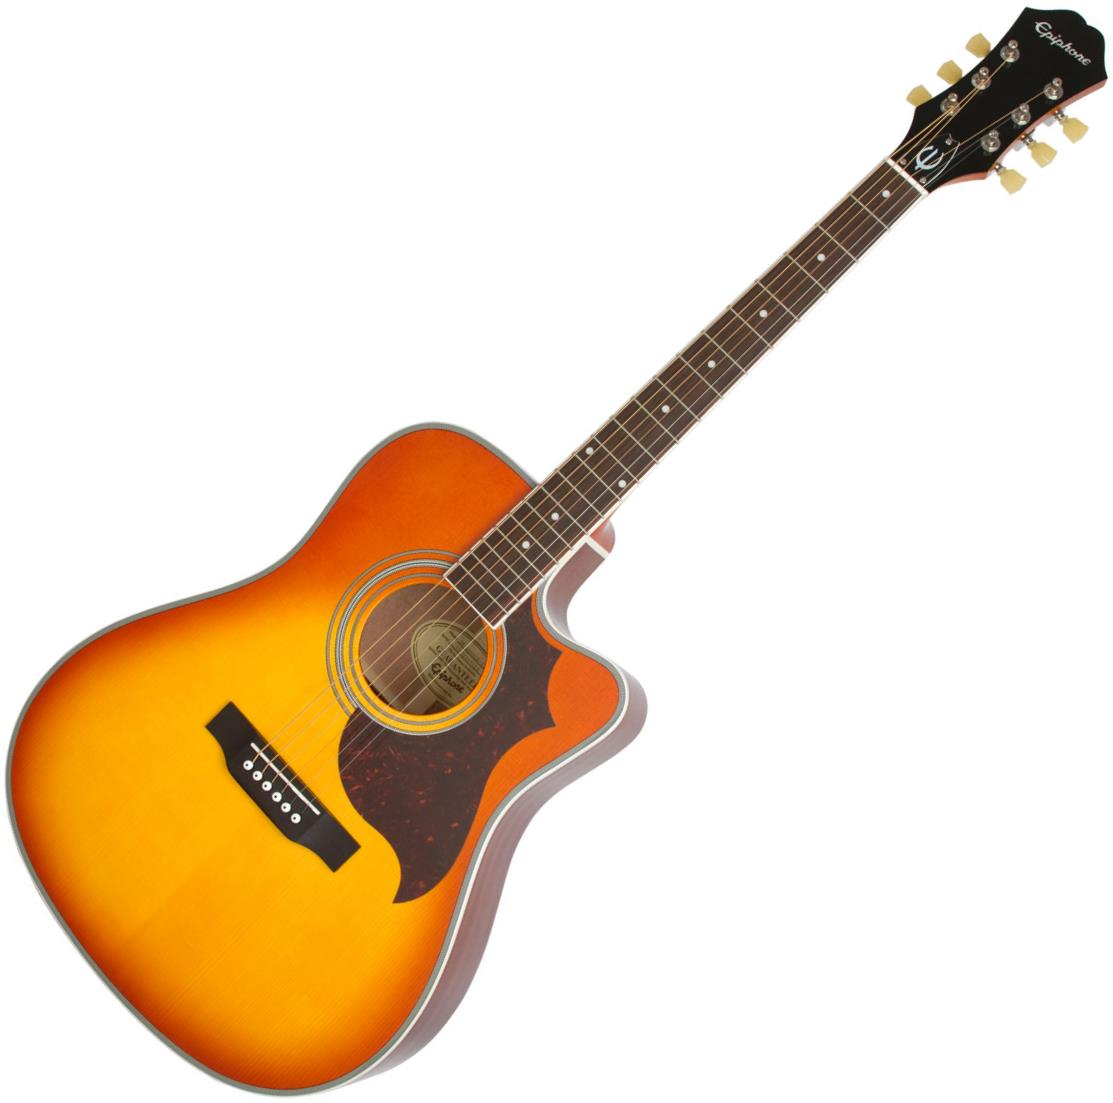 Epiphone FT-350SCE Acoustic-Electric Guitar